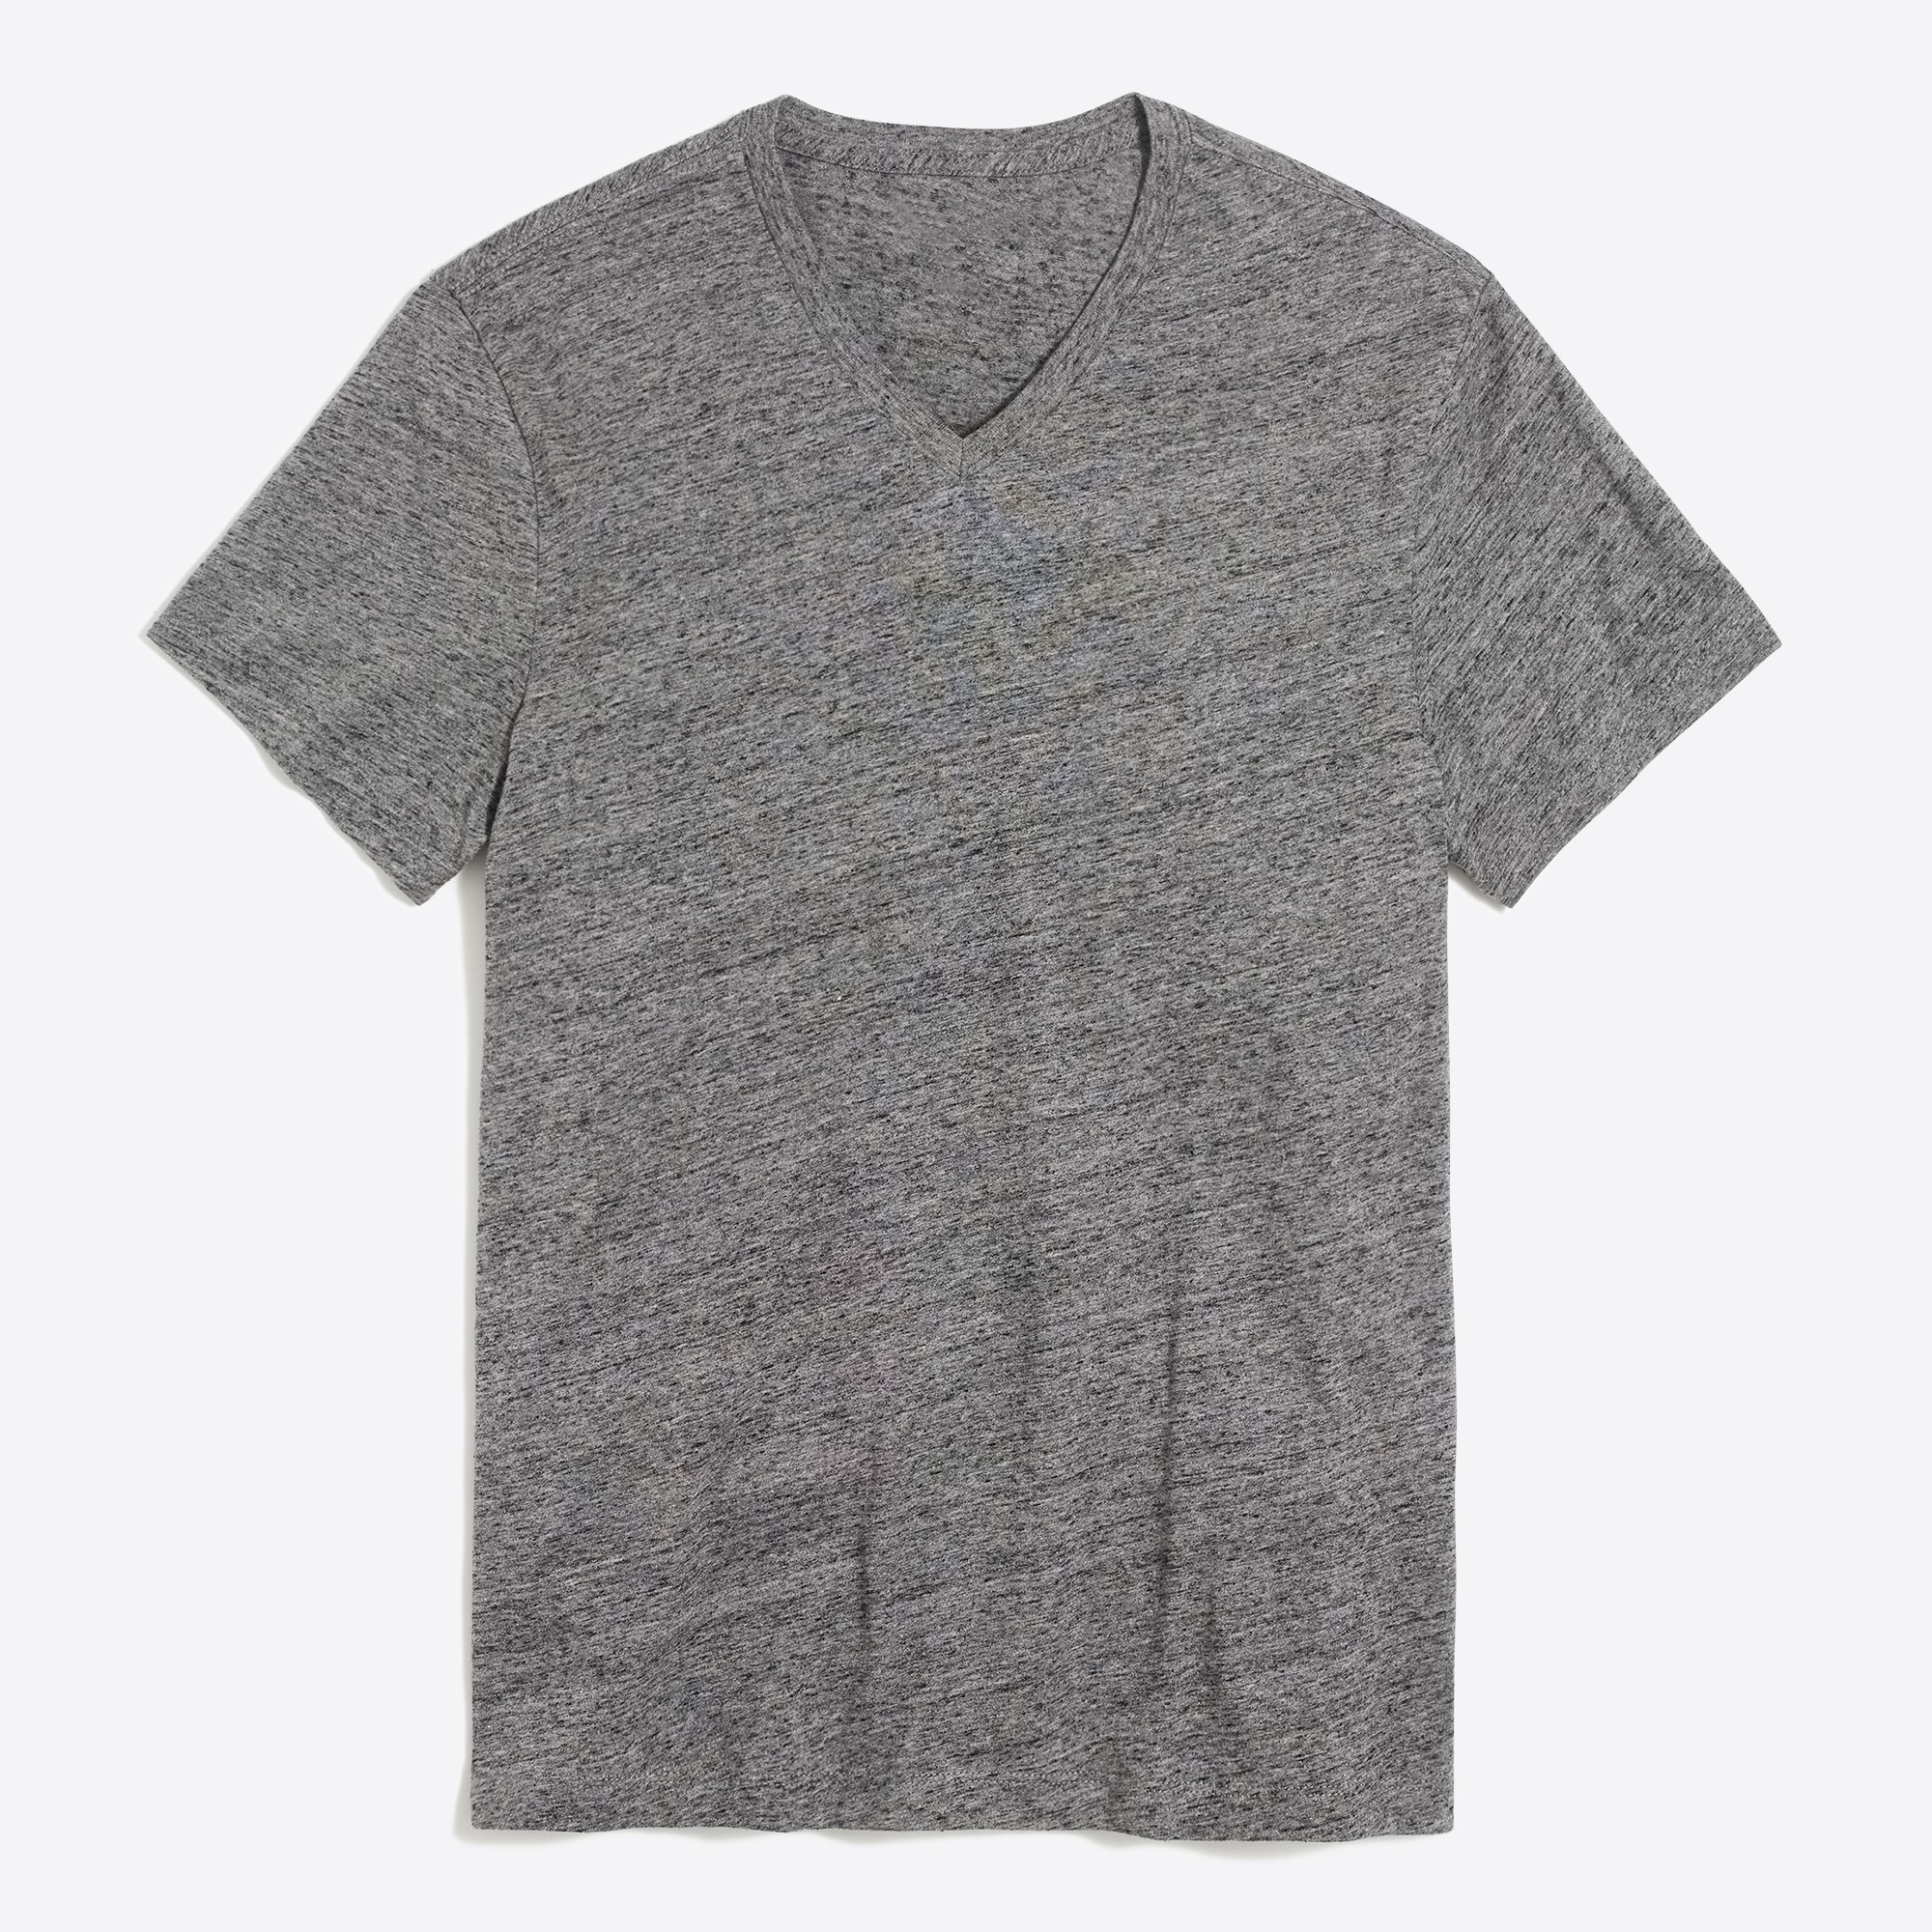 J.Crew Mercantile Broken-in V-neck T-shirt factorymen t-shirts & henleys c